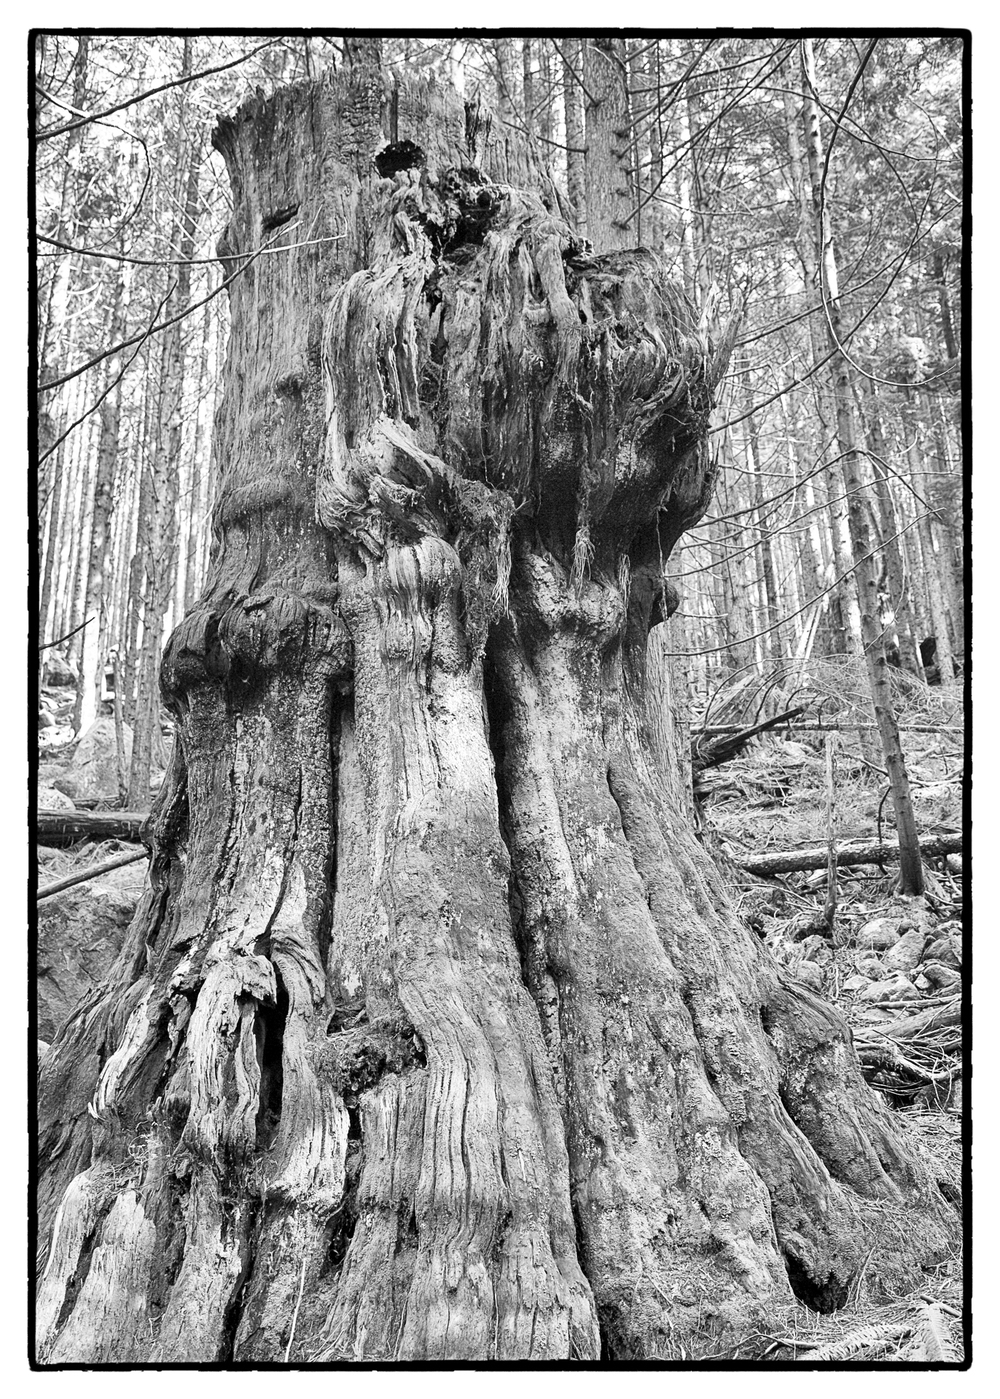 Old growth forest remnants.